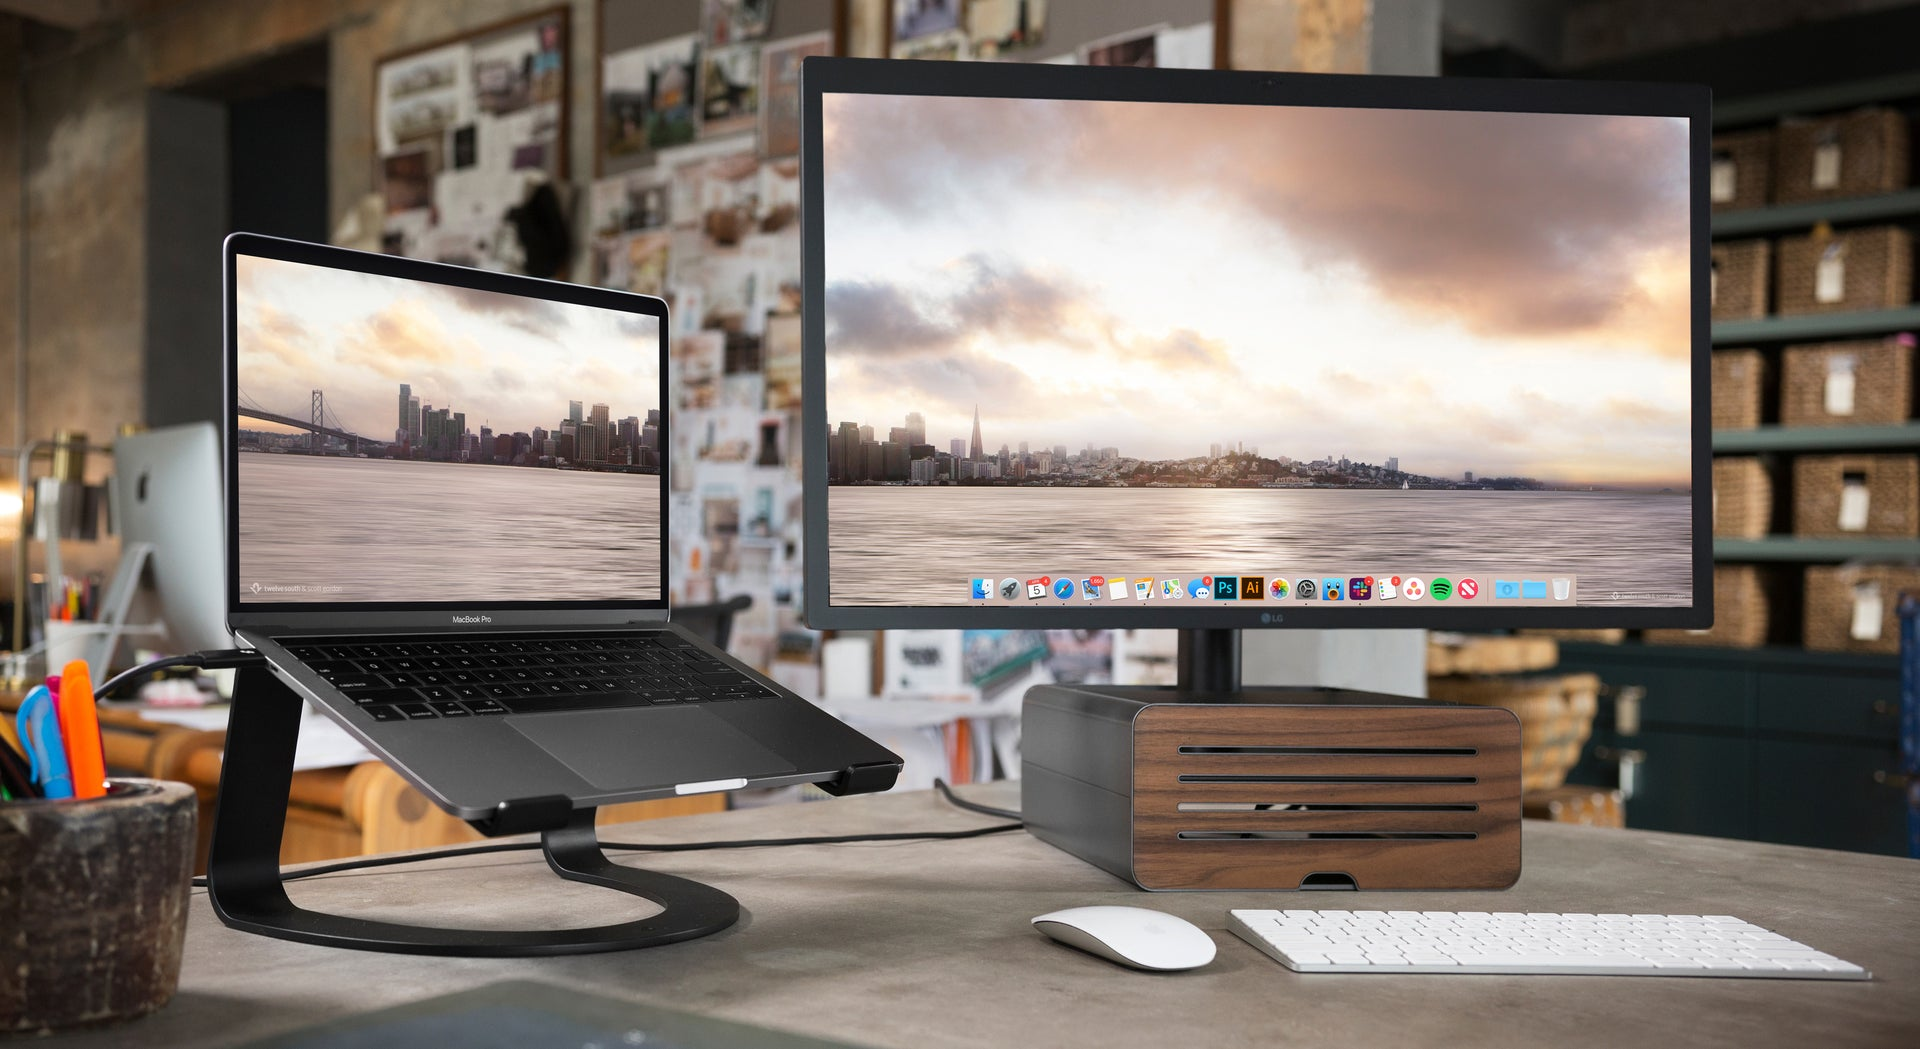 Best Website to Find Dual Monitor Wallpapers